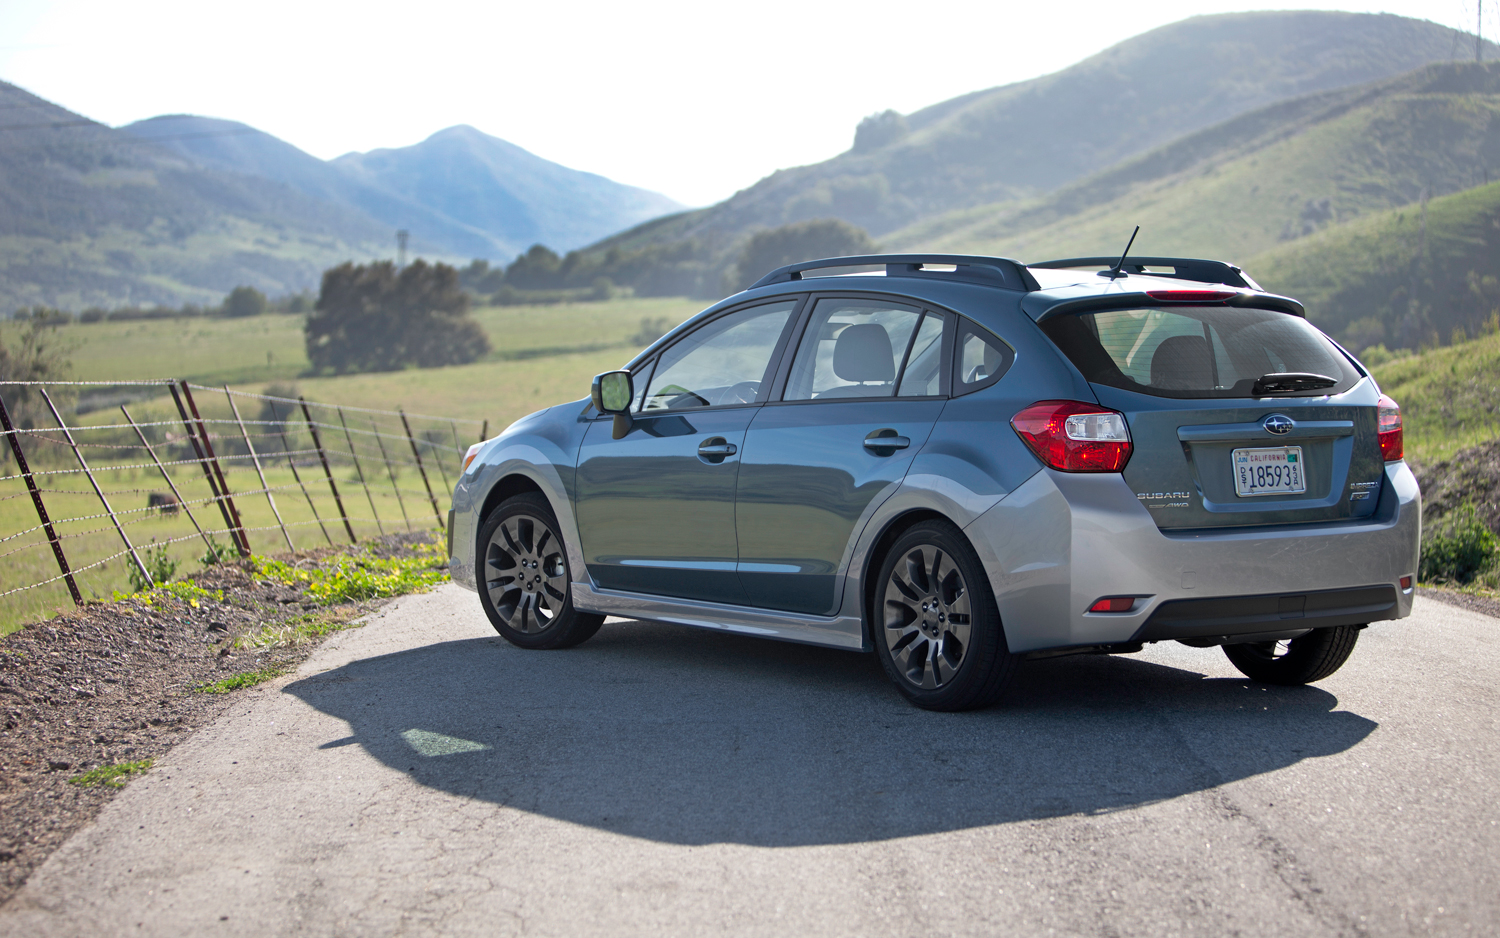 subaru impreza sport 2014 prices u s a 18 395. Black Bedroom Furniture Sets. Home Design Ideas